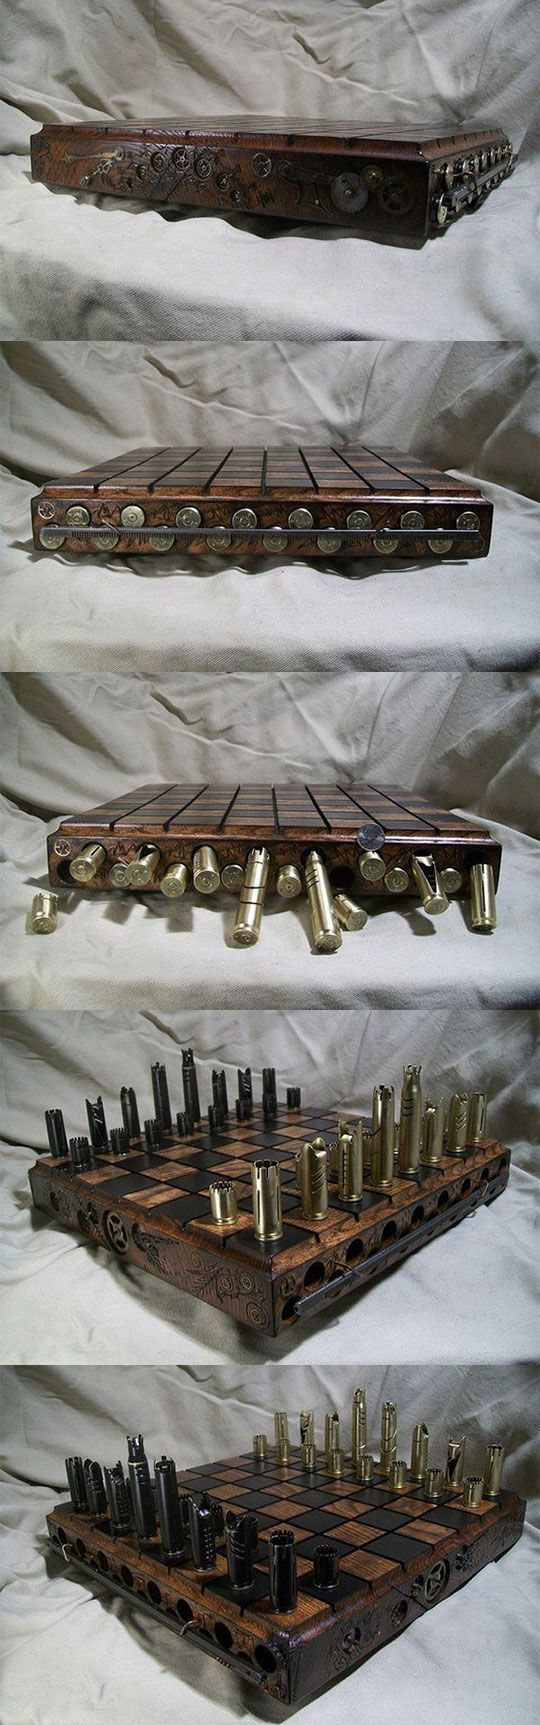 Chess set made out of shell casings